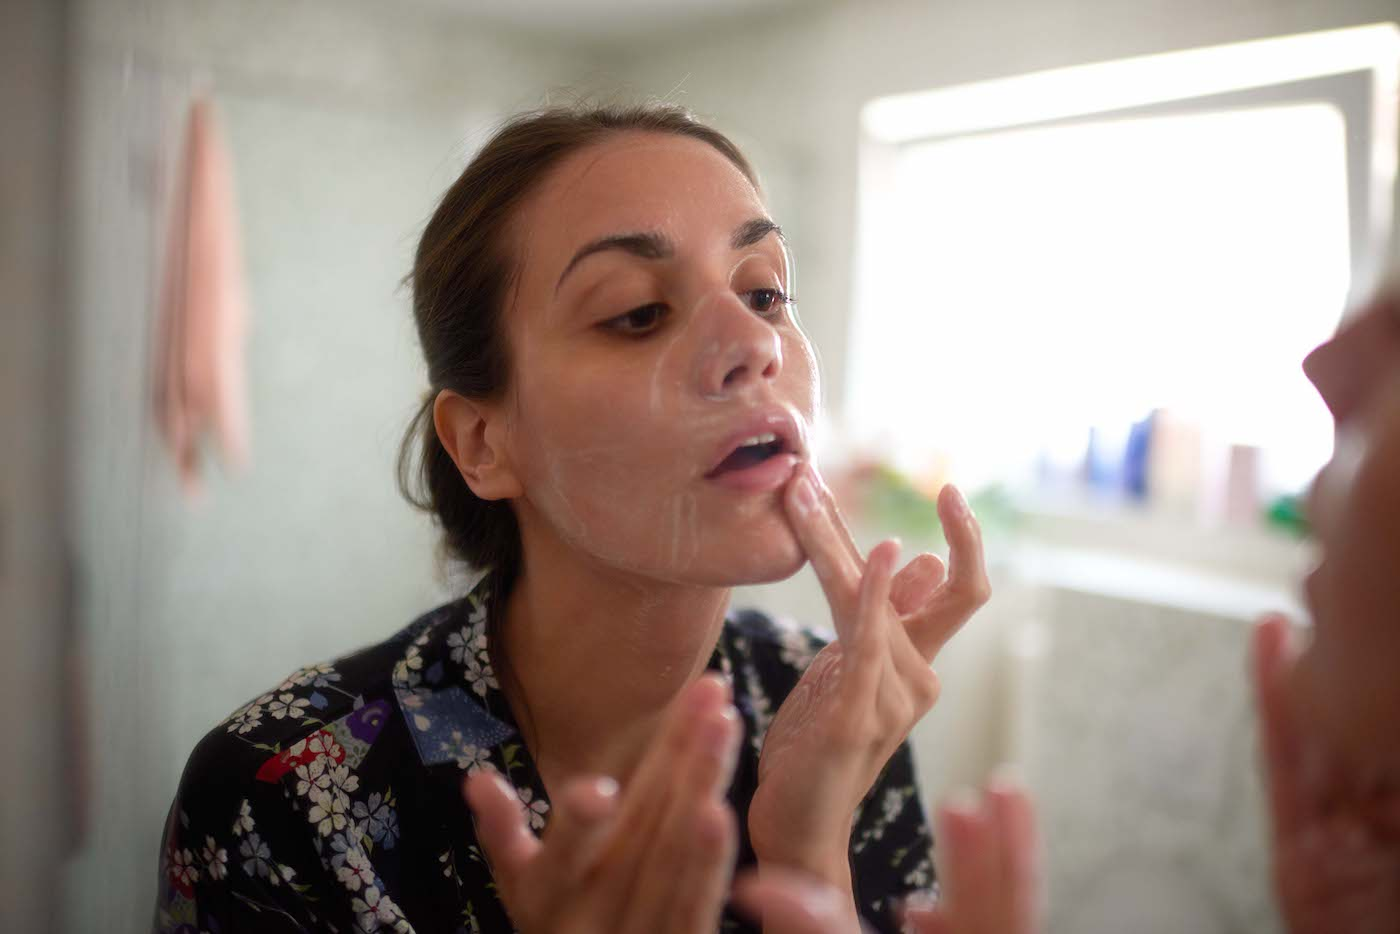 Thumbnail for The Best Face Wash for Acne, According to Dermatologists